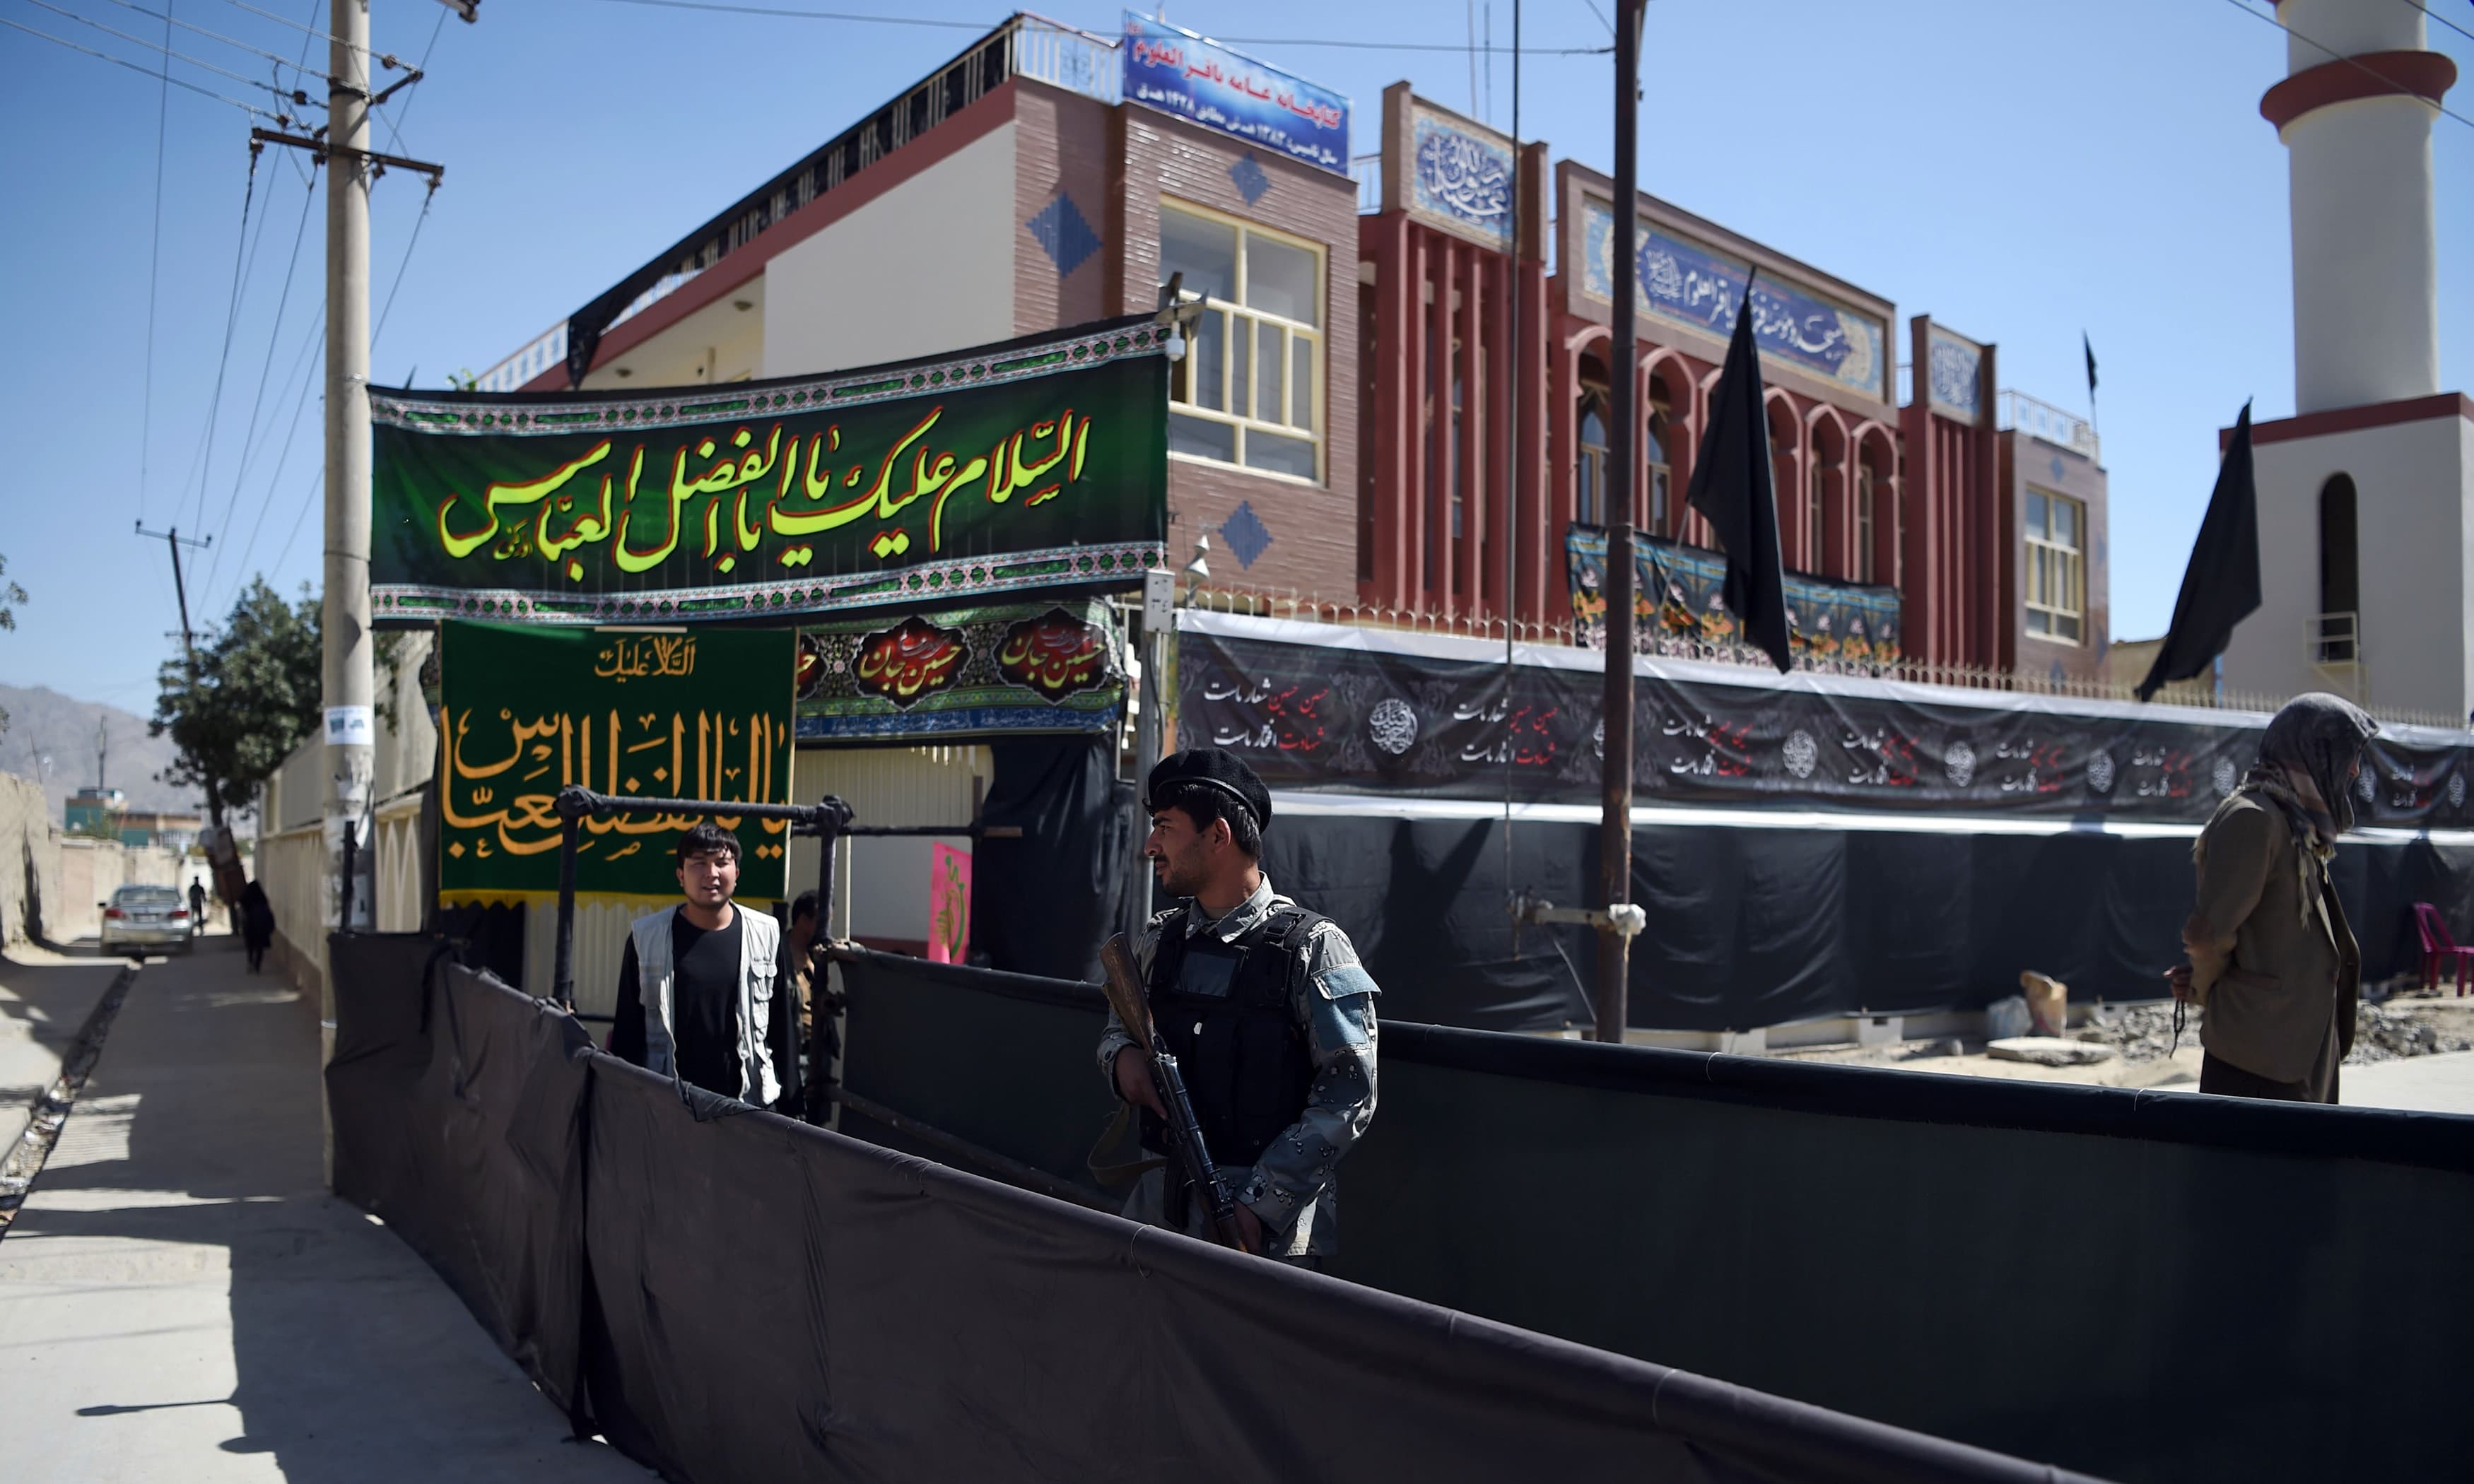 Shias across war-weary Afghanistan are bracing themselves for potential sectarian attacks as they prepare to commemorate Ashura which falls this weekend. —AFP